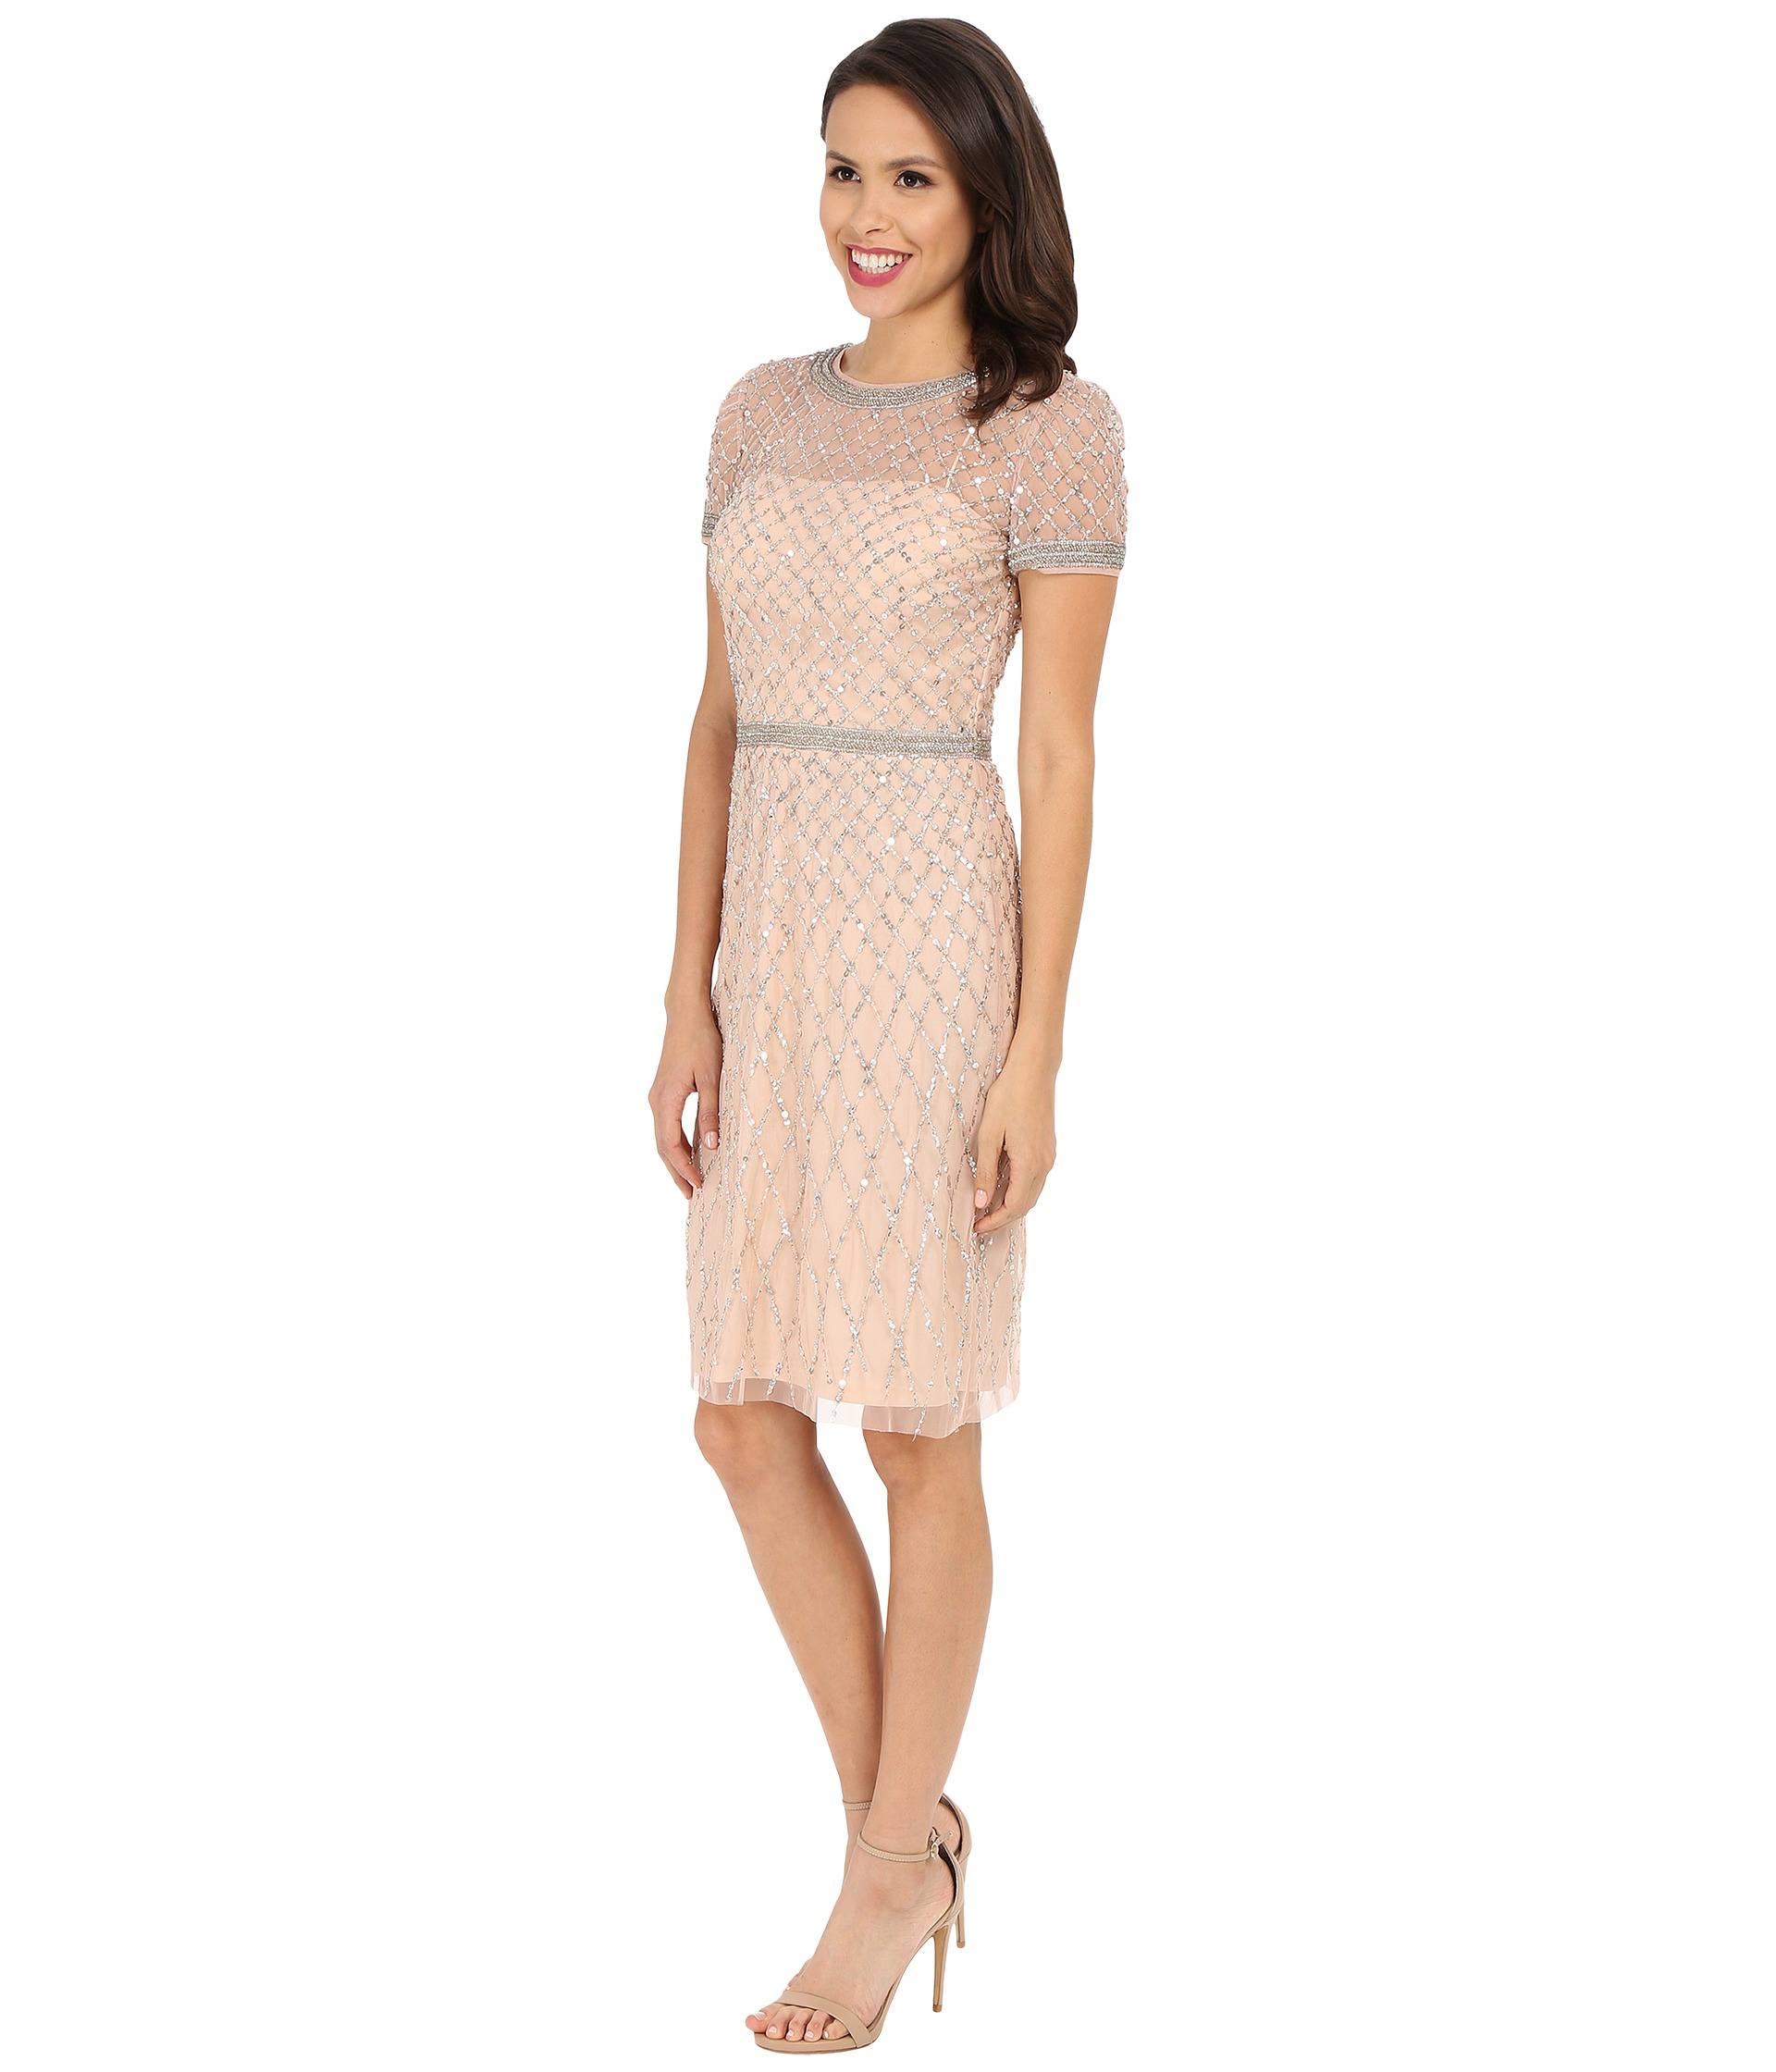 96711ac4 Adrianna Papell Short Sleeve Fully Beaded Cocktail Dress in Pink - Lyst